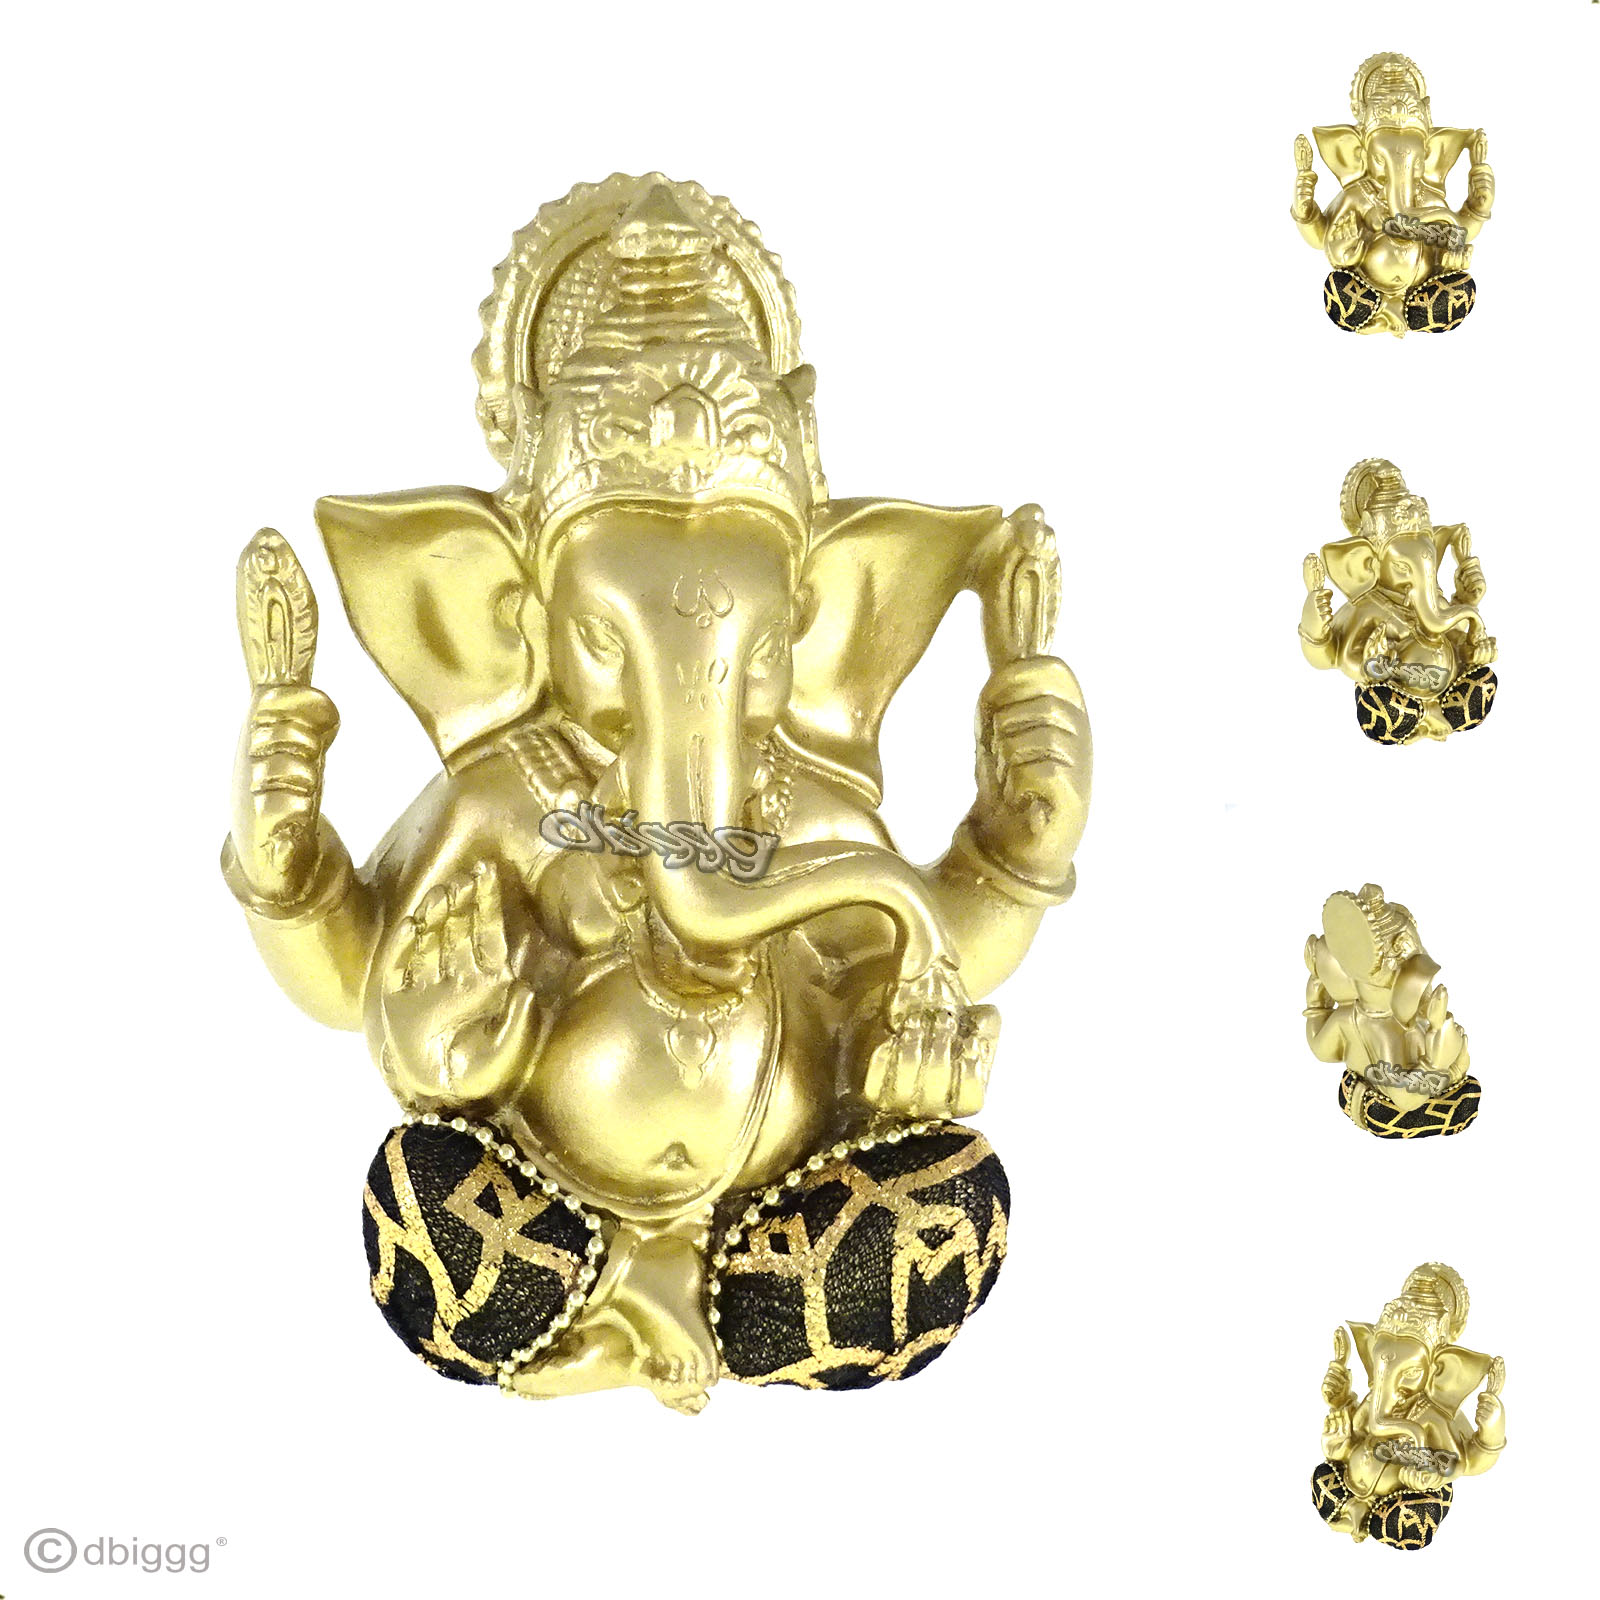 baby ganesha in gold schwarz kleidung aus stoff dekofigur dekoration ebay. Black Bedroom Furniture Sets. Home Design Ideas